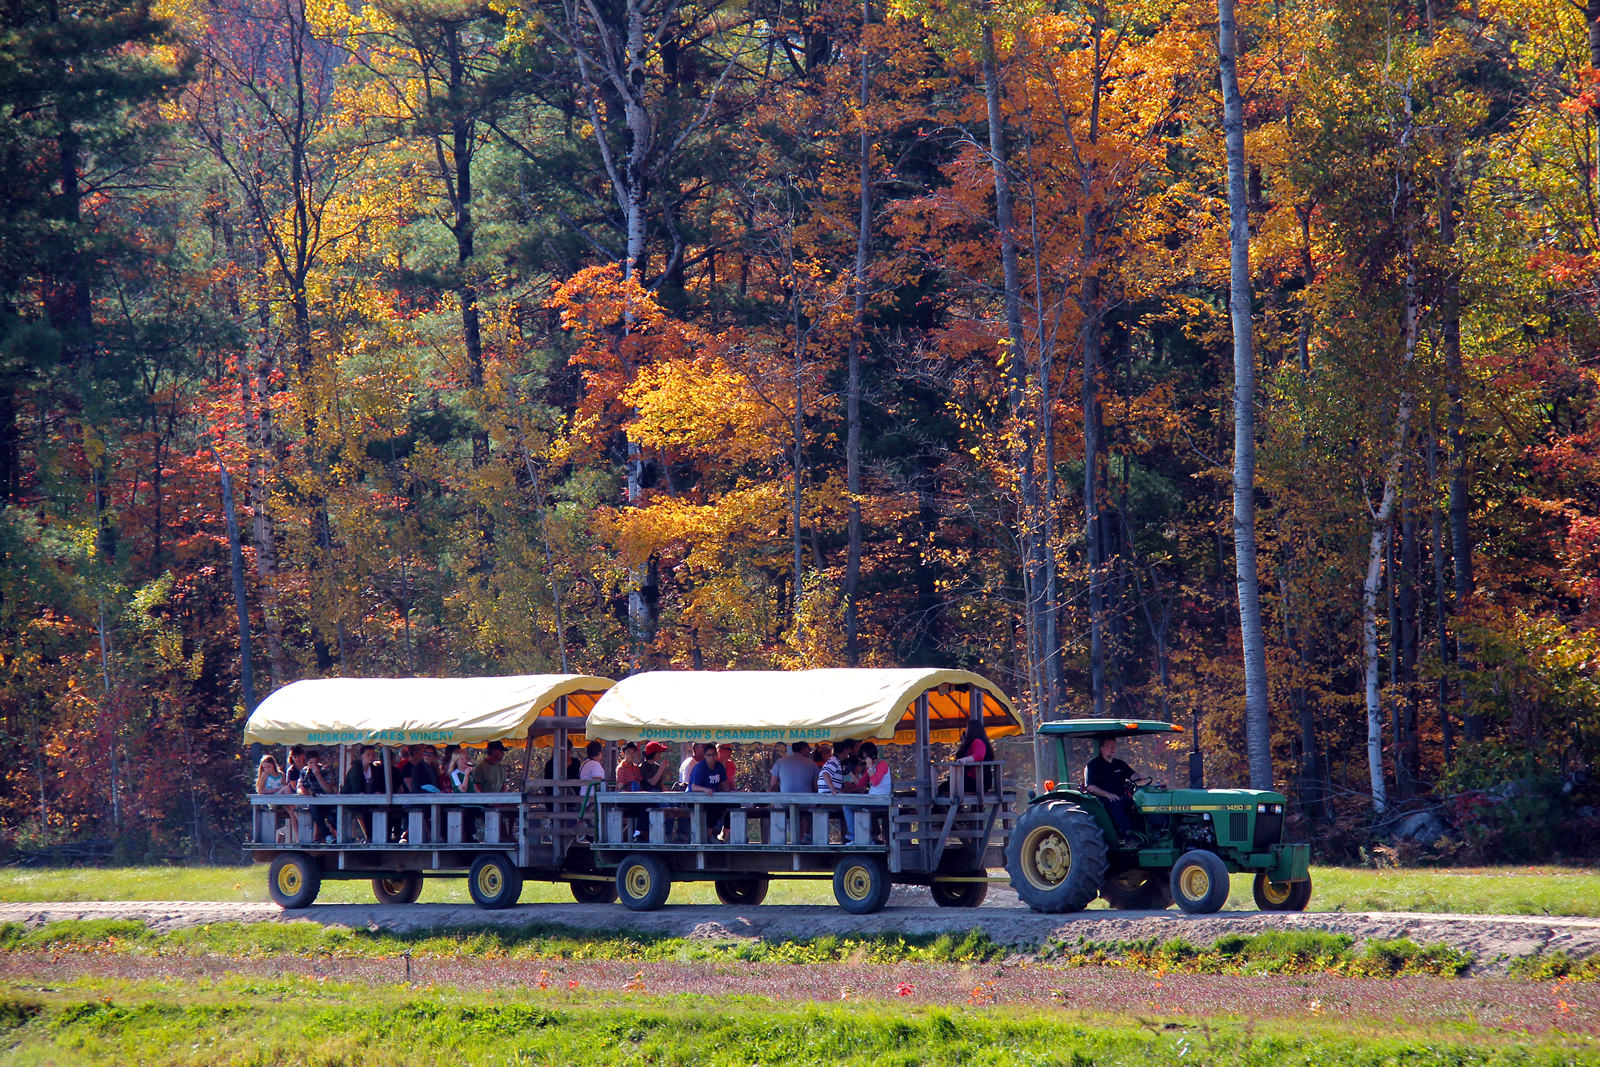 tractor pulled wagon against fall trees